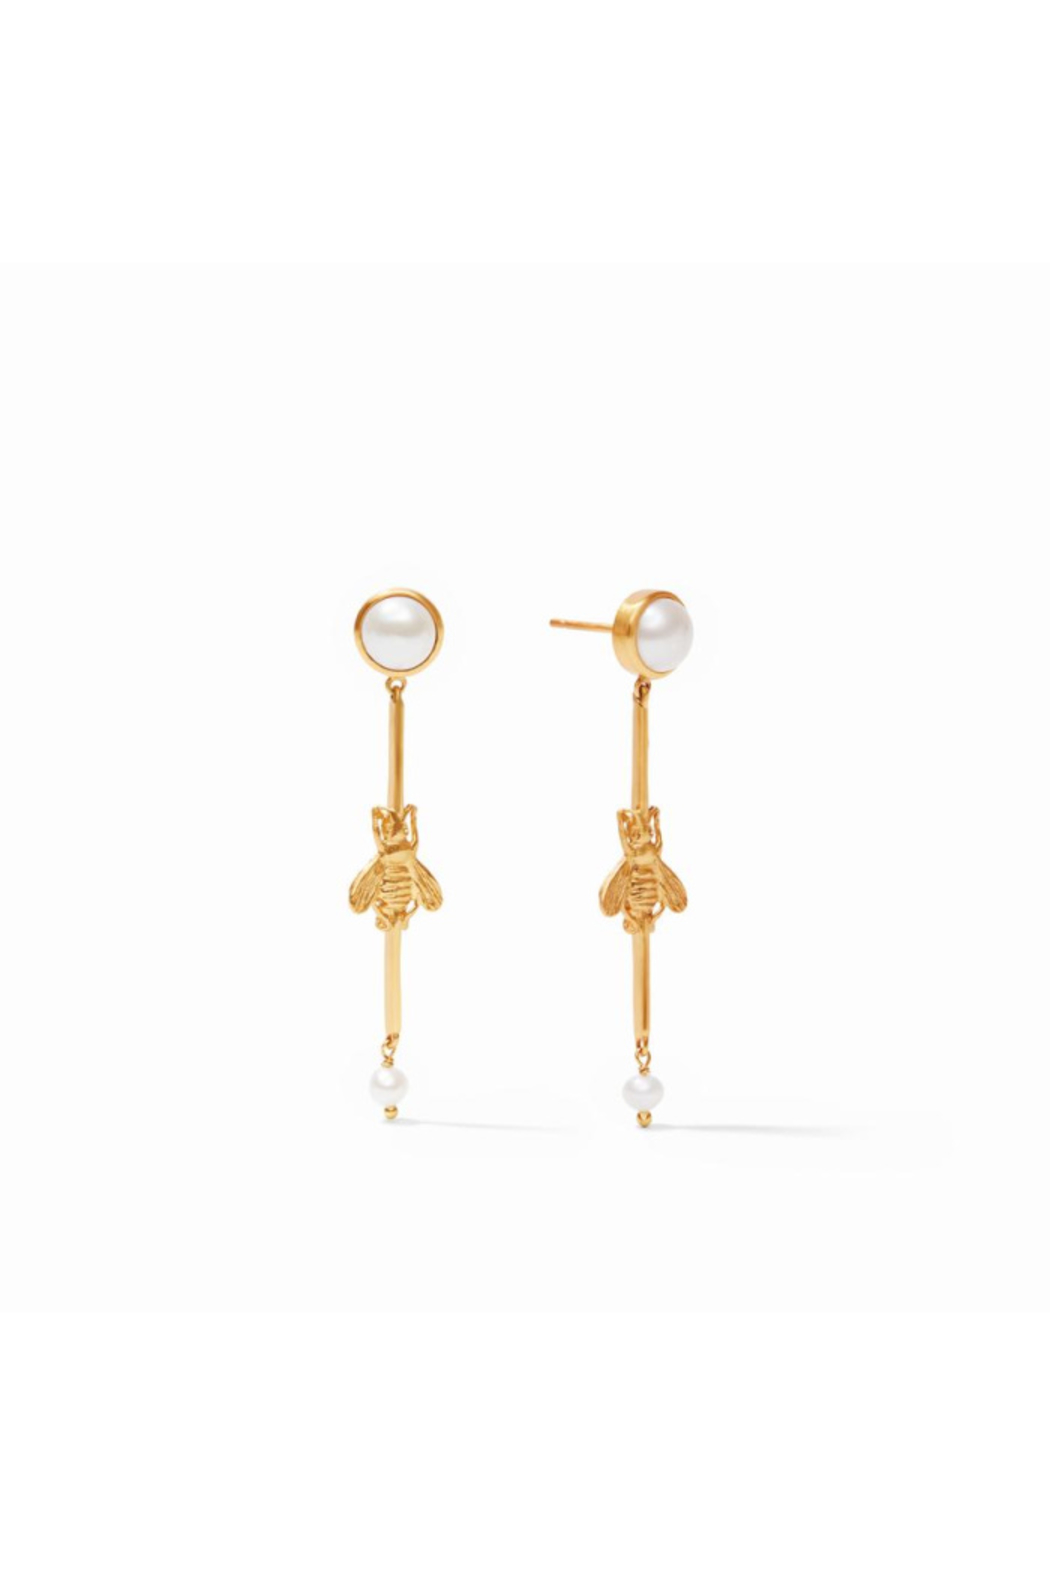 Julie Vos Bee Duster Earring Gold Pearl - Main Image